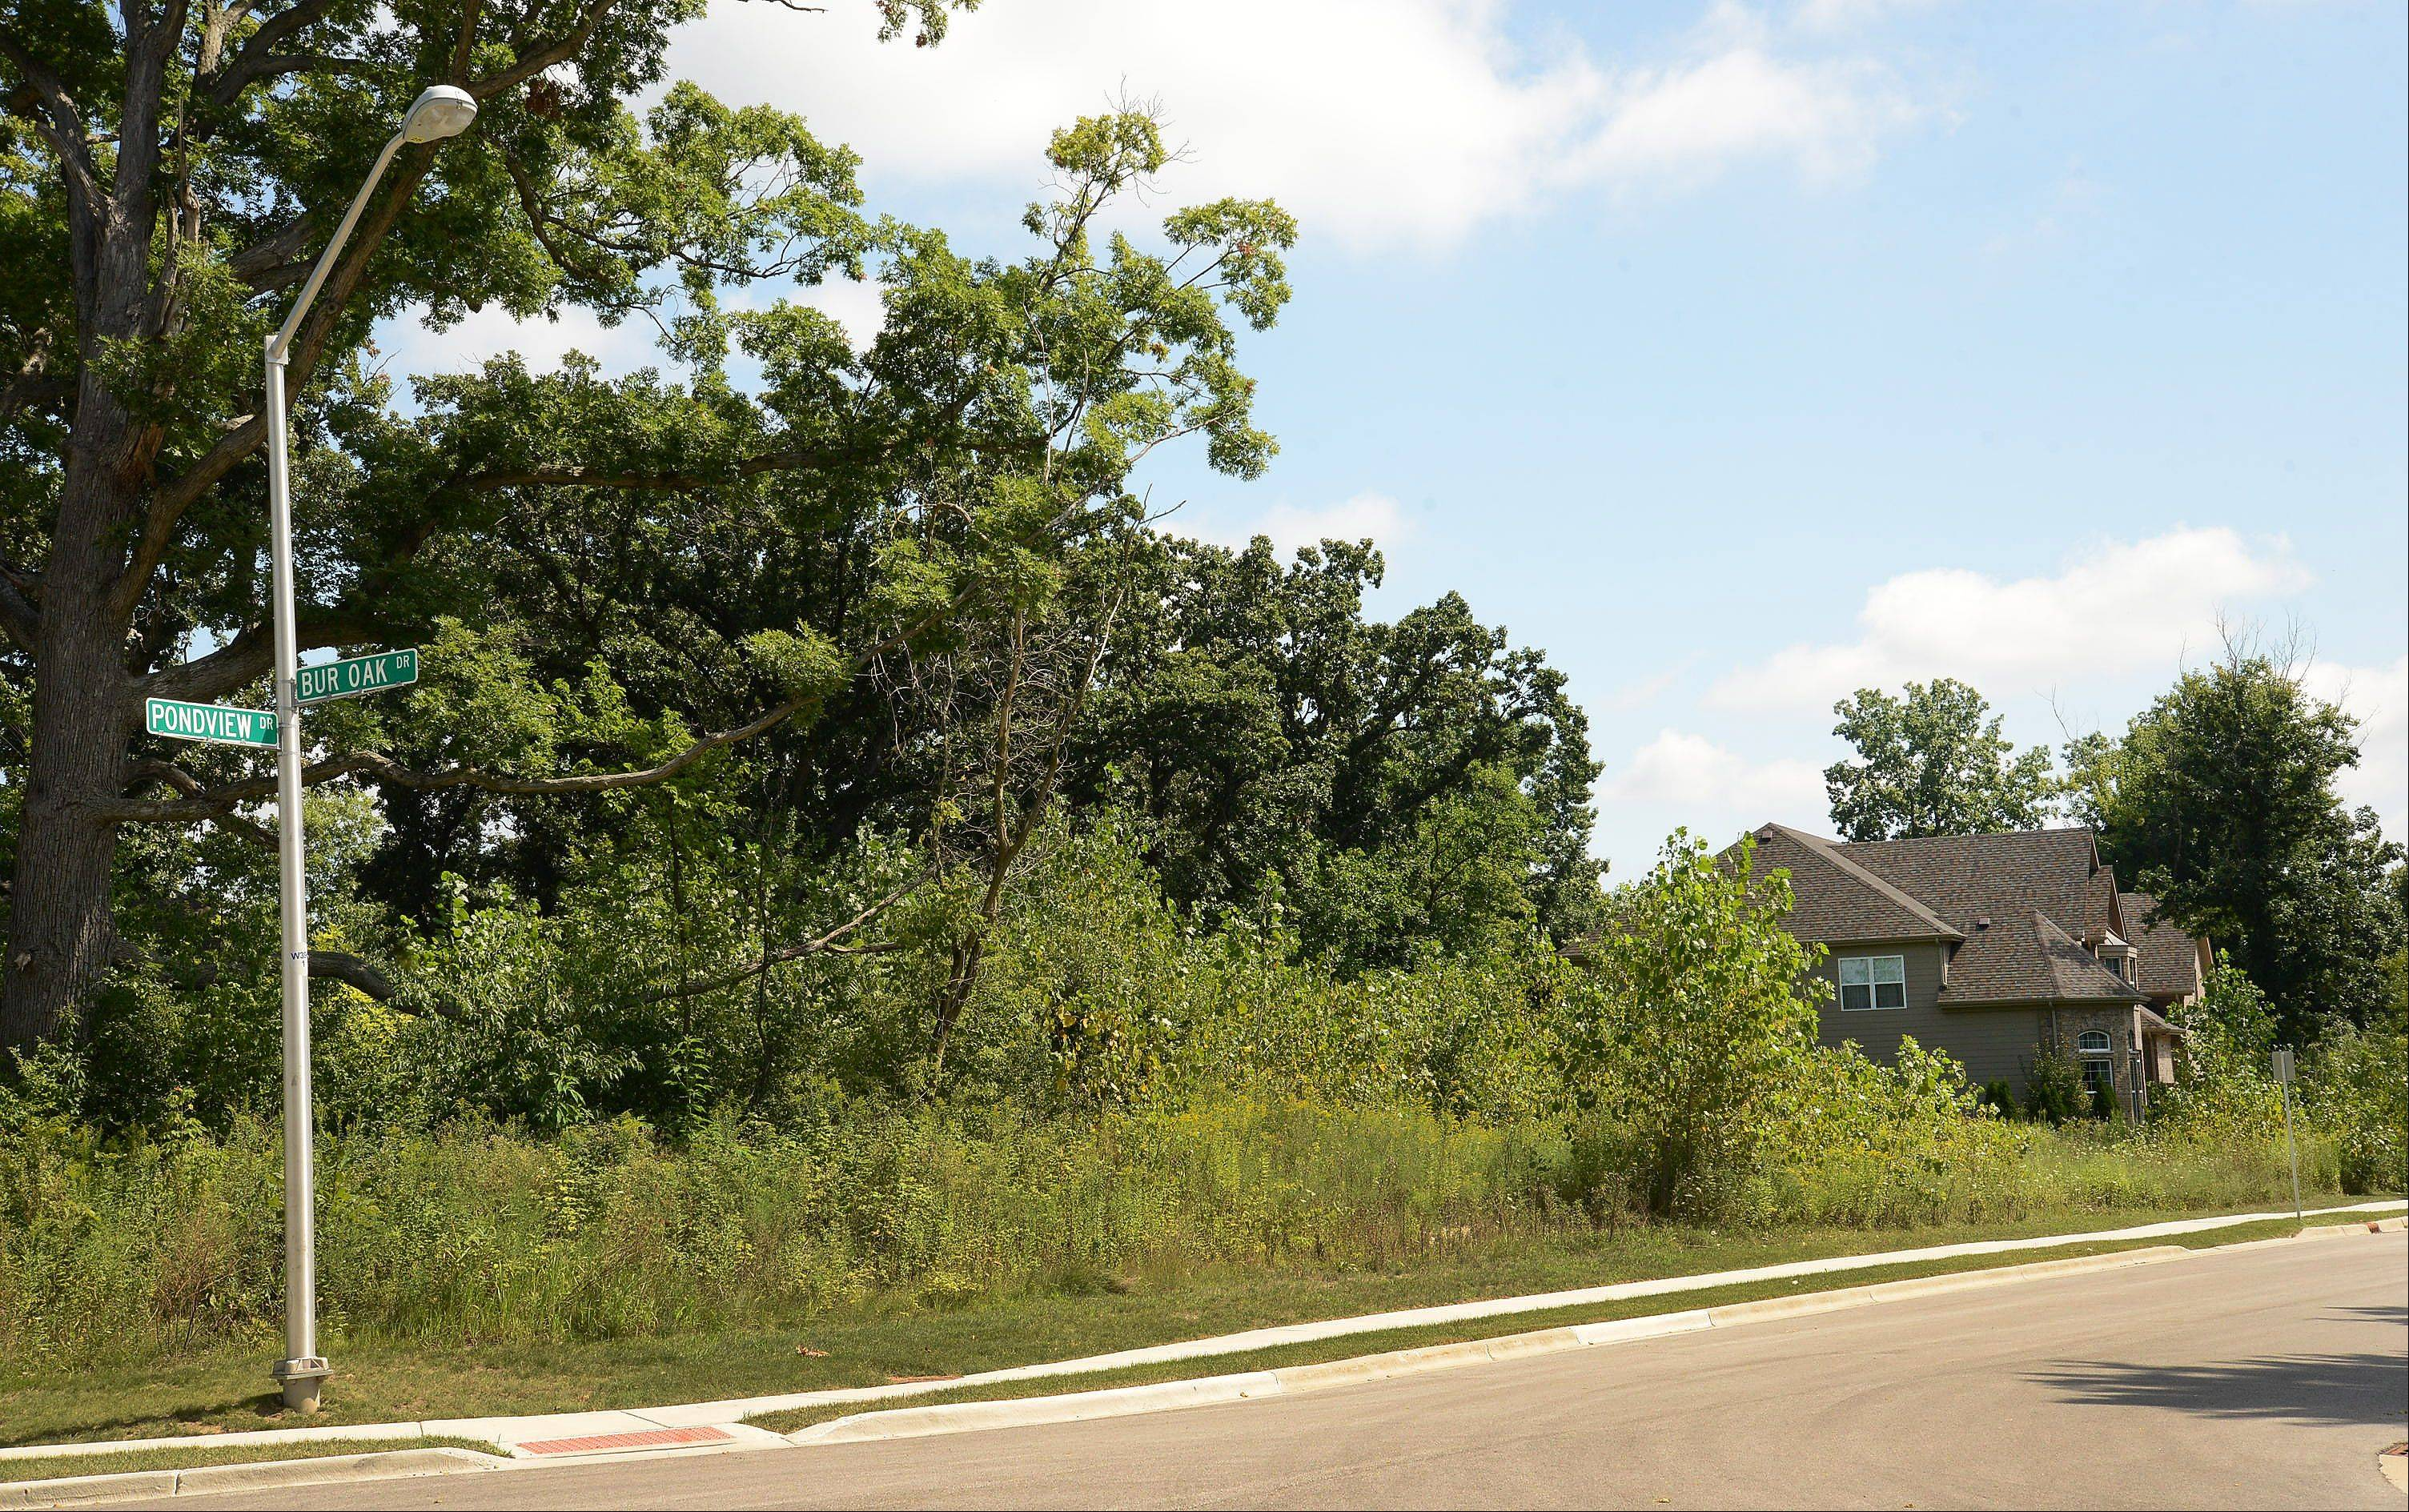 Residents of Hoffman Estates' Devonshire Woods Estates subdivision are unhappy with a developer's proposal to build smaller, less expensive homes on vacant lots in the neighborhood. The developer gave an informal presentation of the plan to village leaders this week.